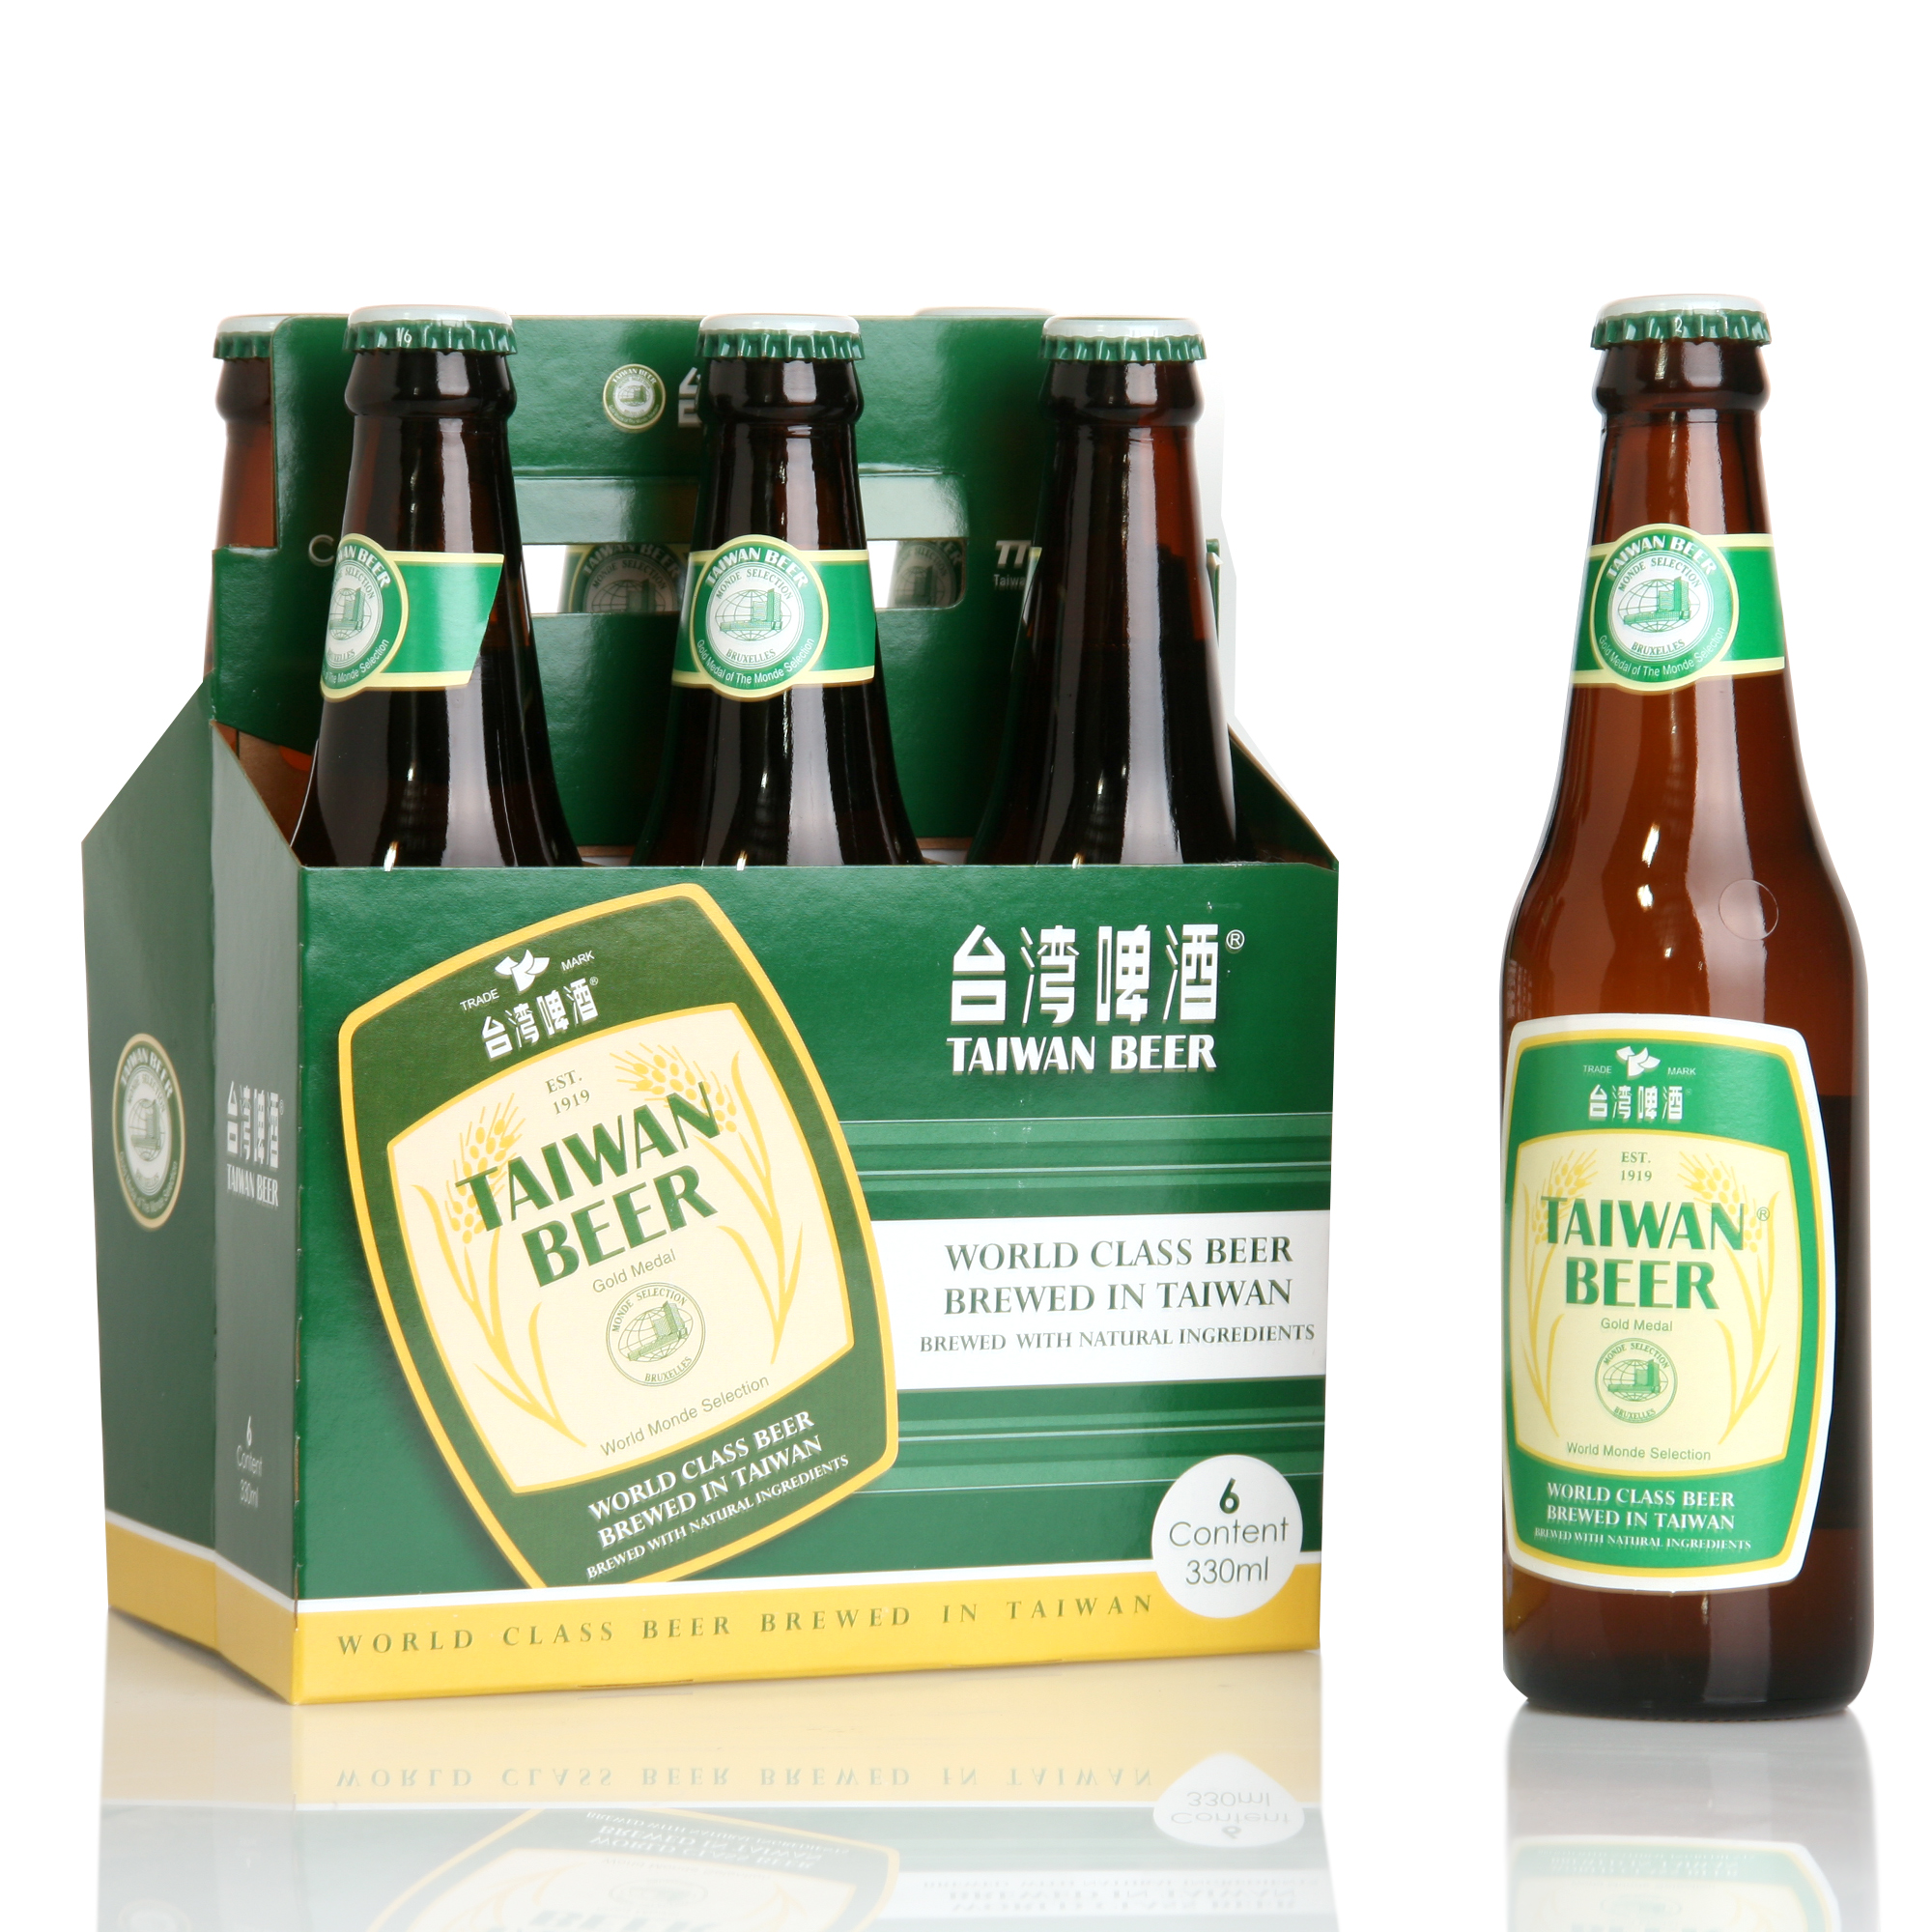 Taiwan Beer-6 pack bottle